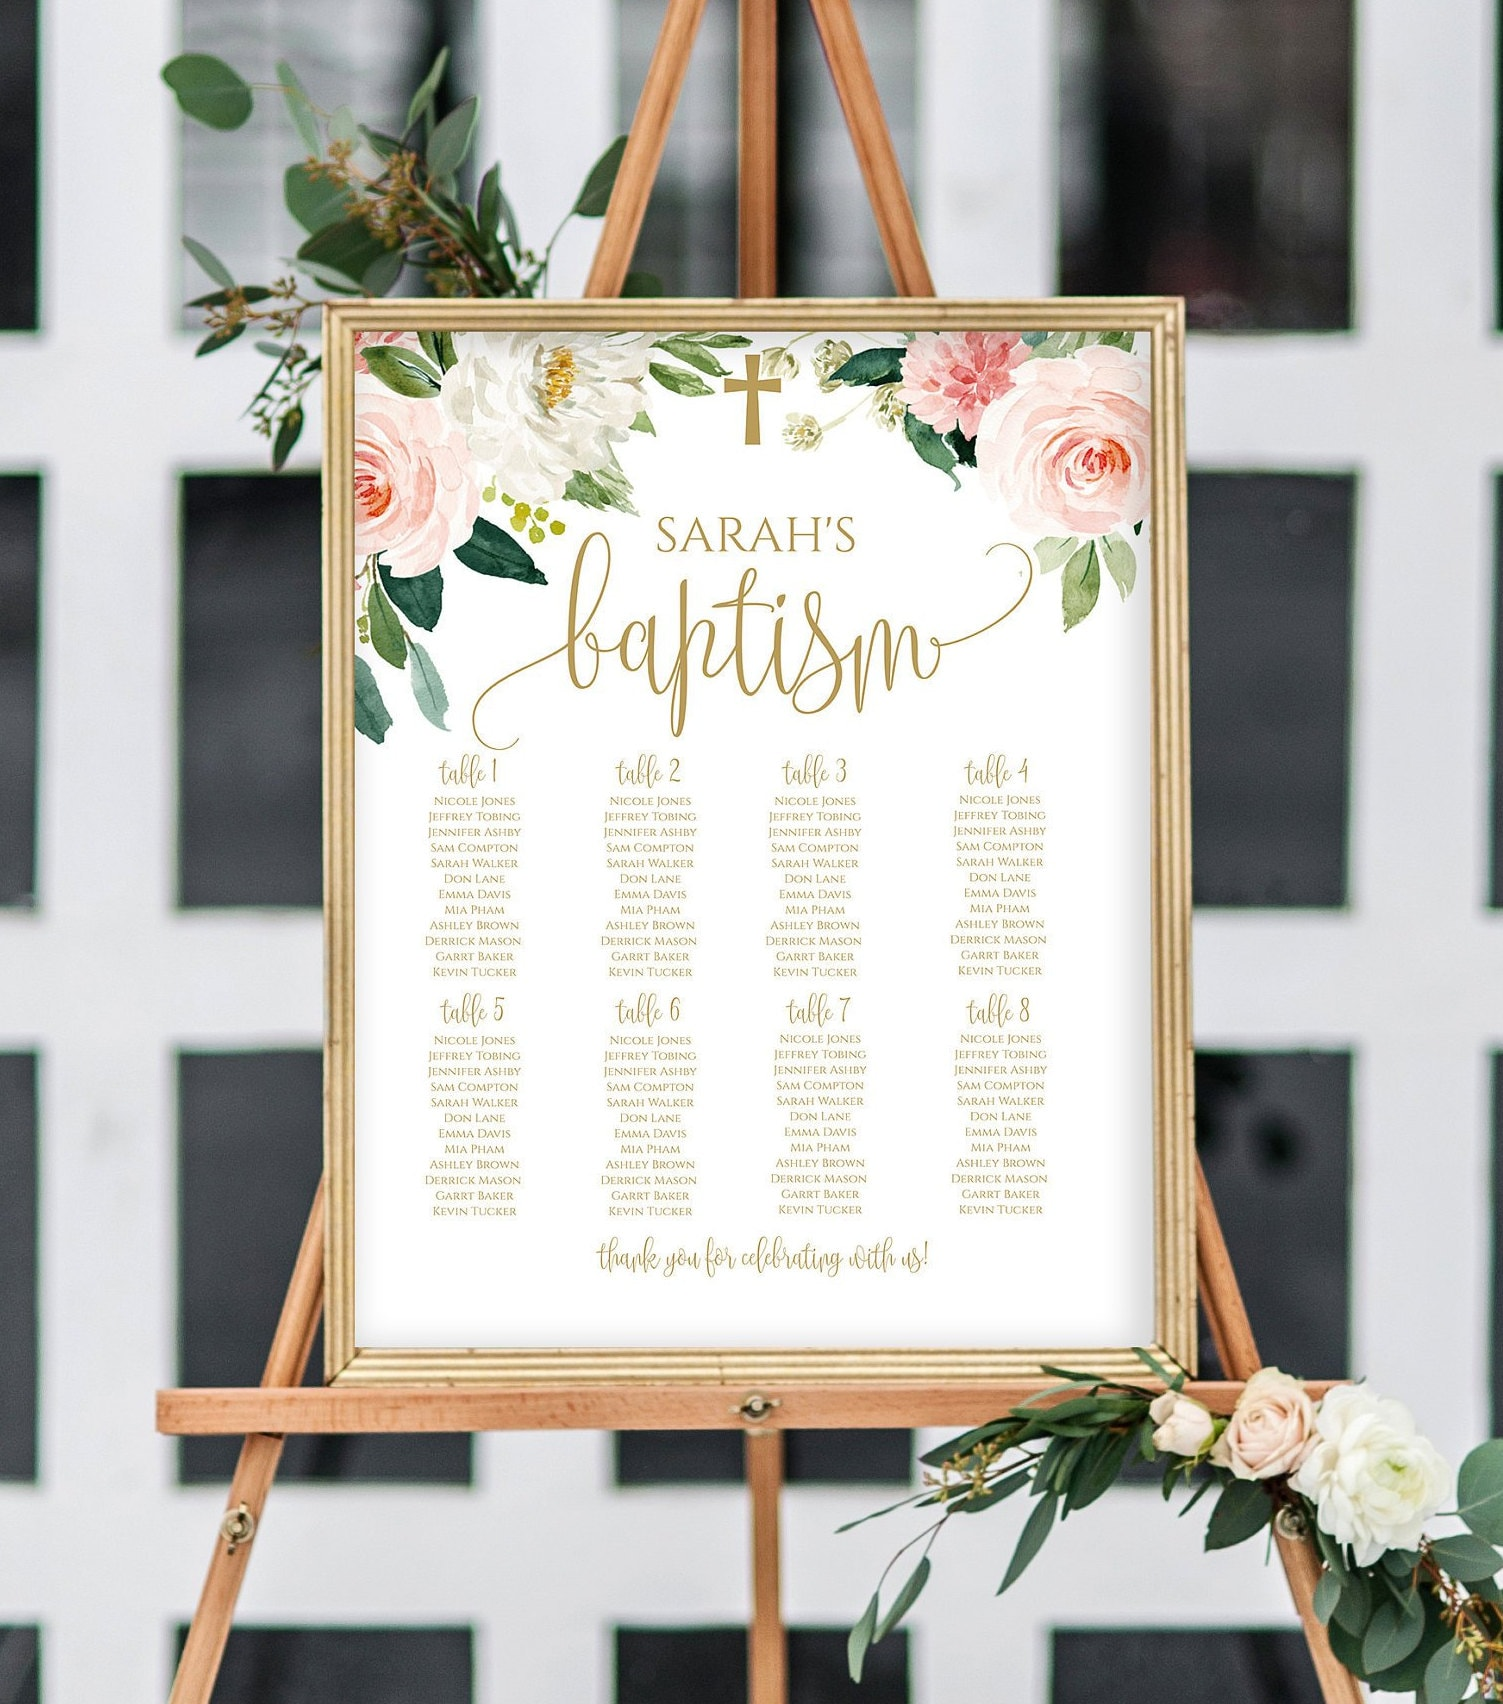 Baptism Seating Chart Template Diy Seating Chart Editable Seating Chart Printable Seating Plan For Baptism Communion Seating Chart 1143